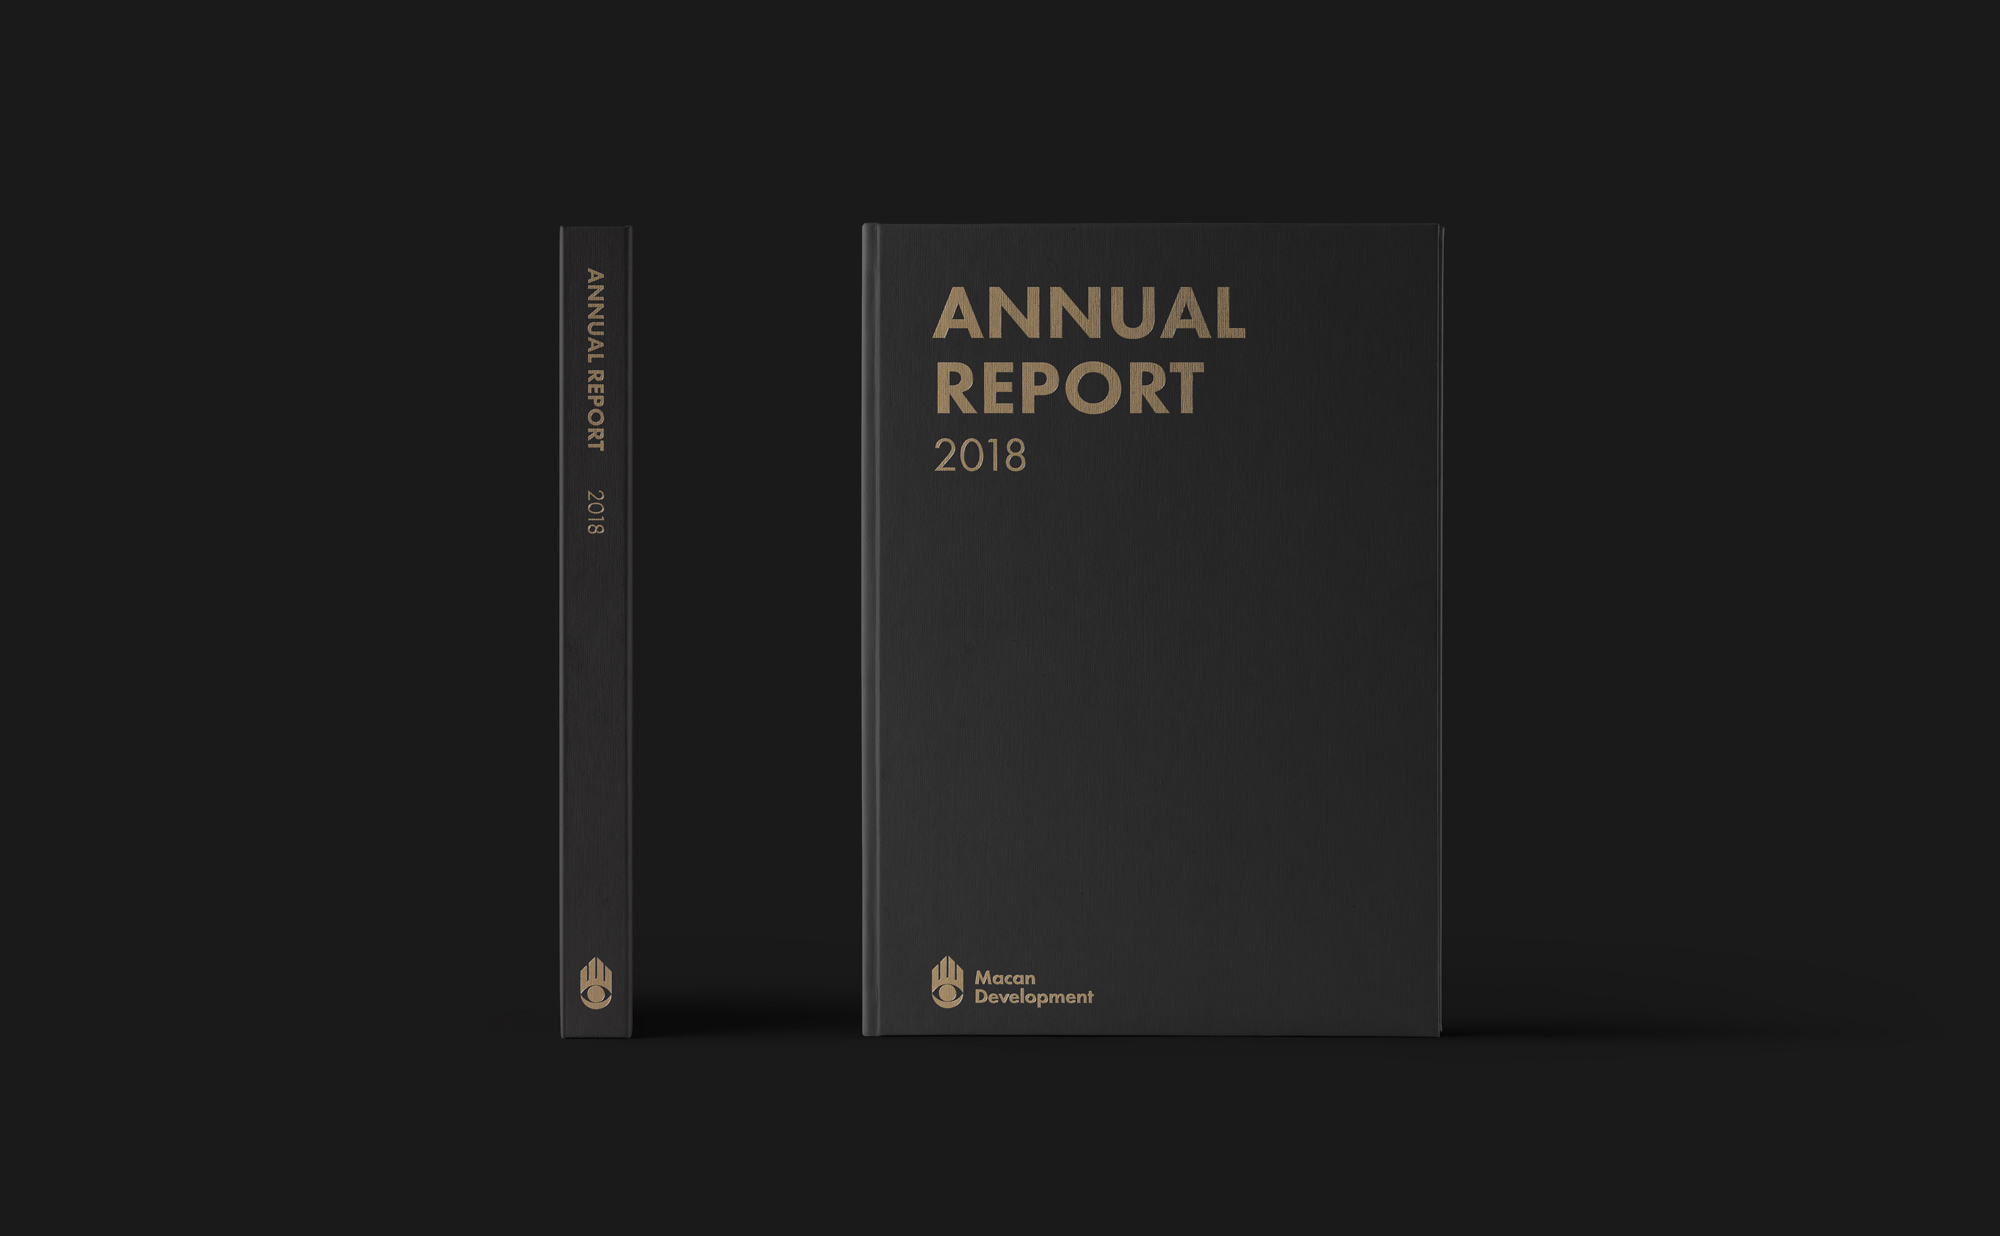 Macan Development Annual Report